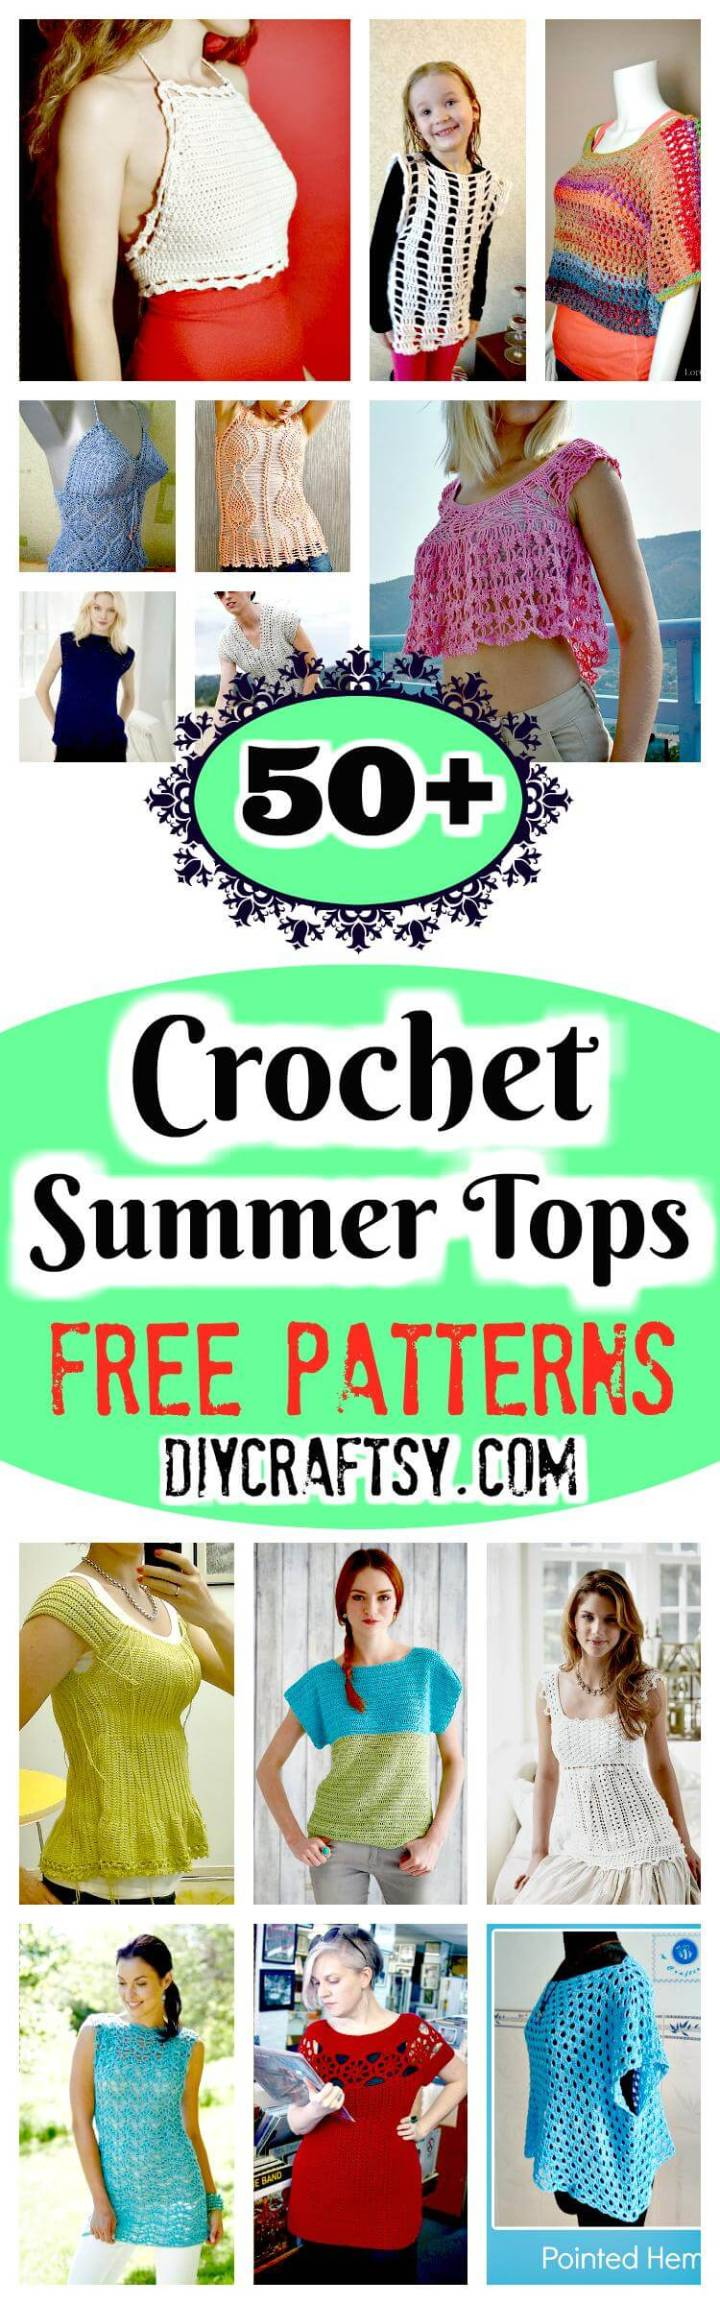 Crochet Summer Tops - Free Patterns